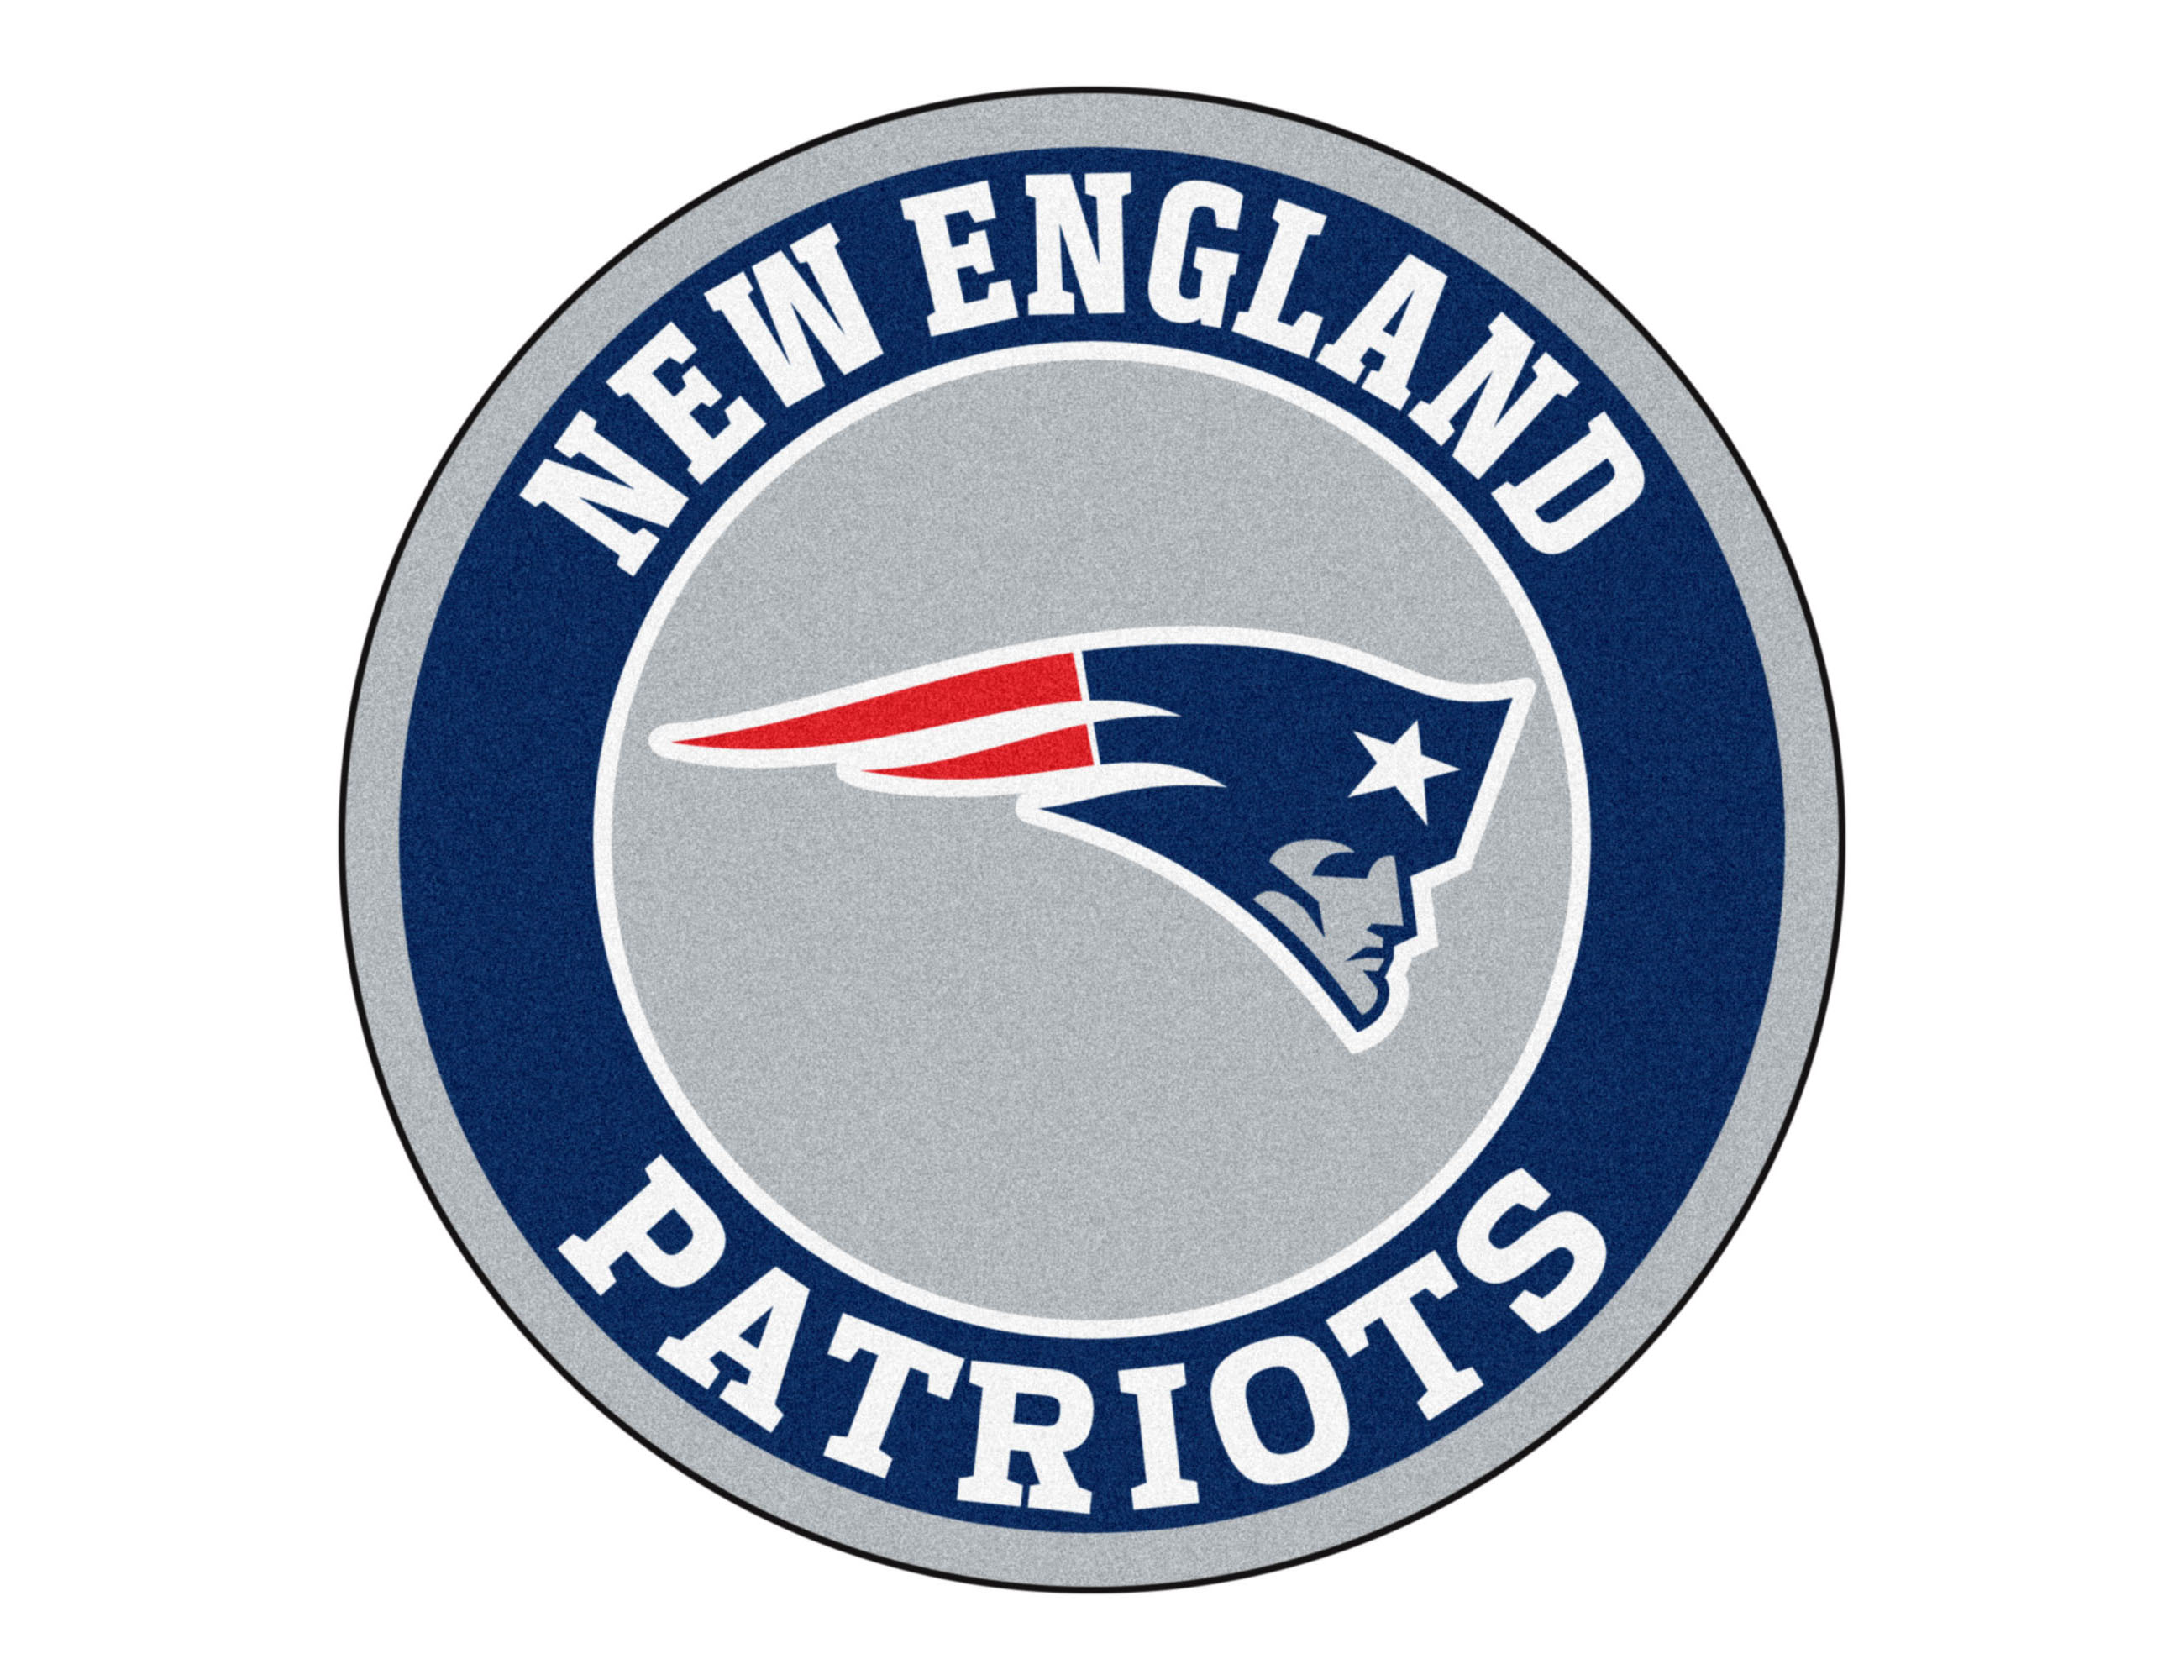 new england patriots logo  new england patriots symbol clipart elvis the king clipart elvis the king